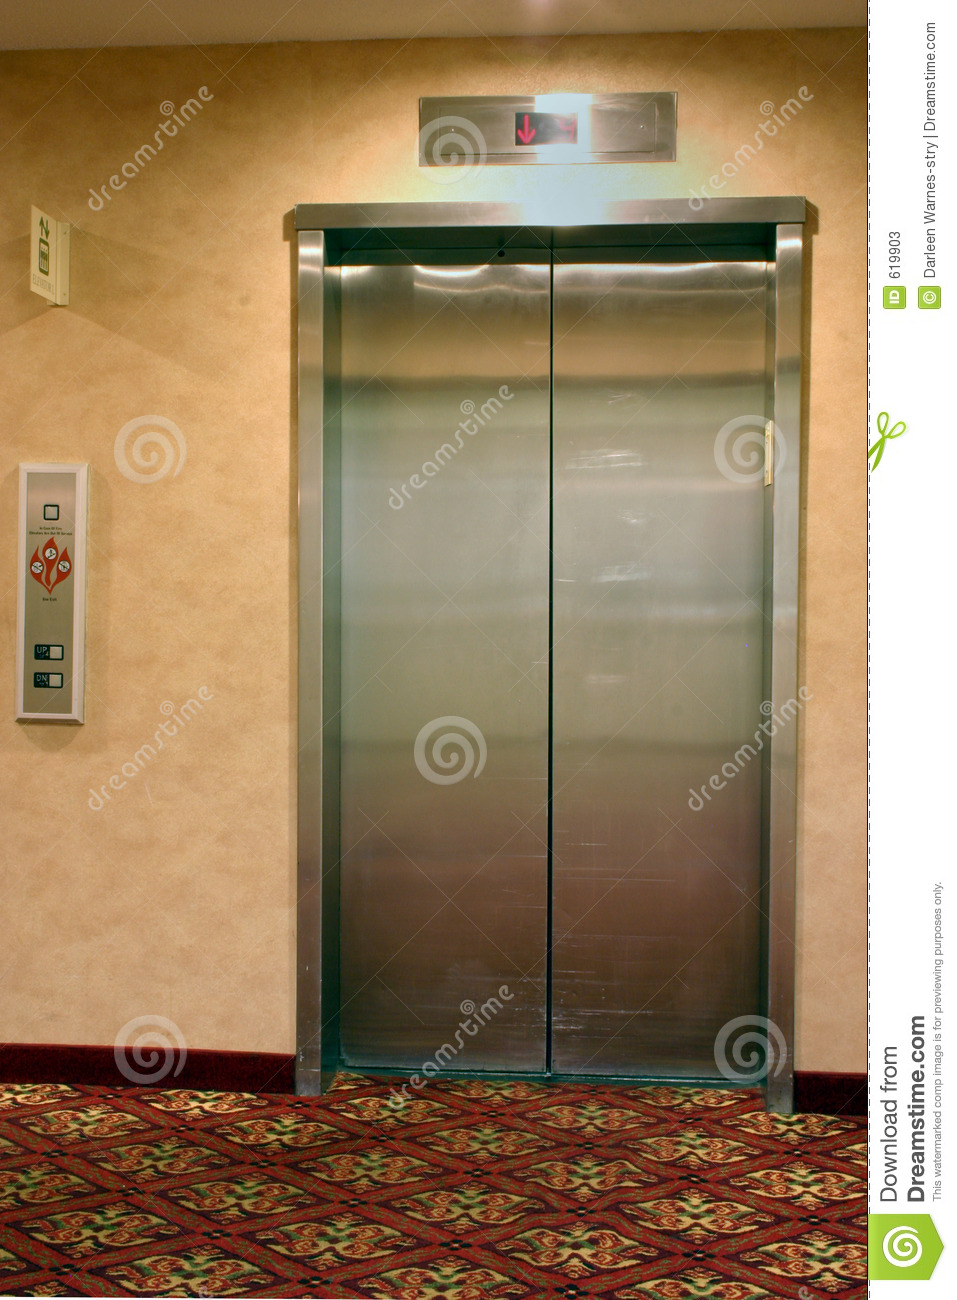 indoor elevator stock image image of elevate brushed